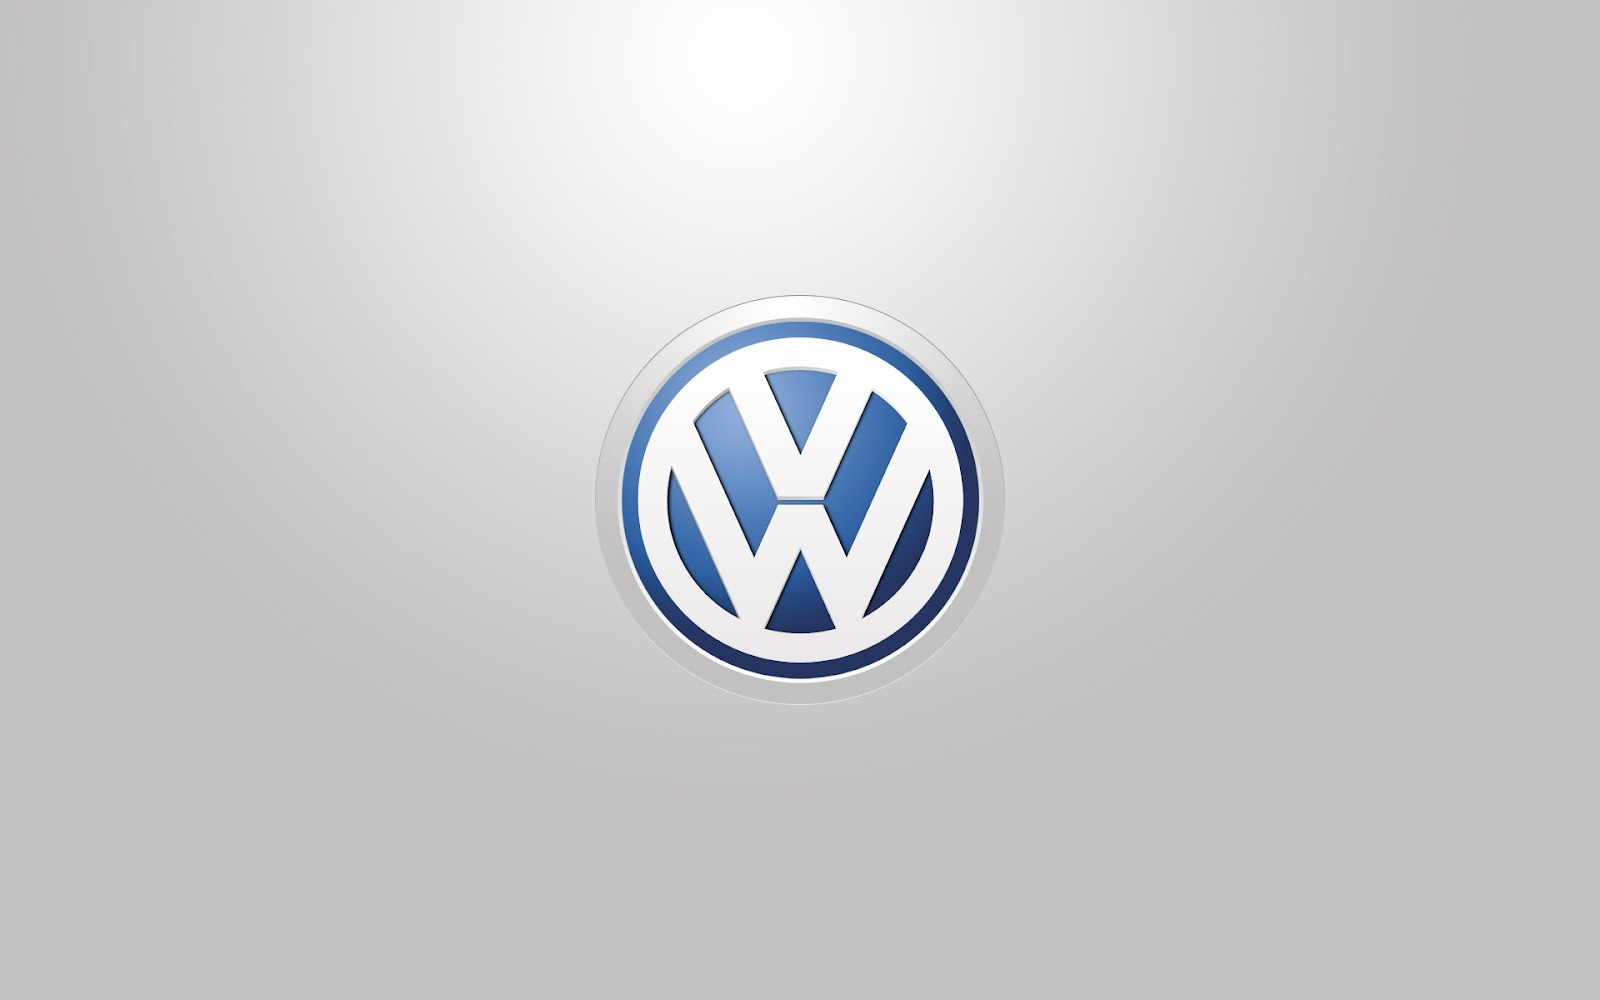 5 HD Volkswagen Logo Wallpapers - HDWallSource com